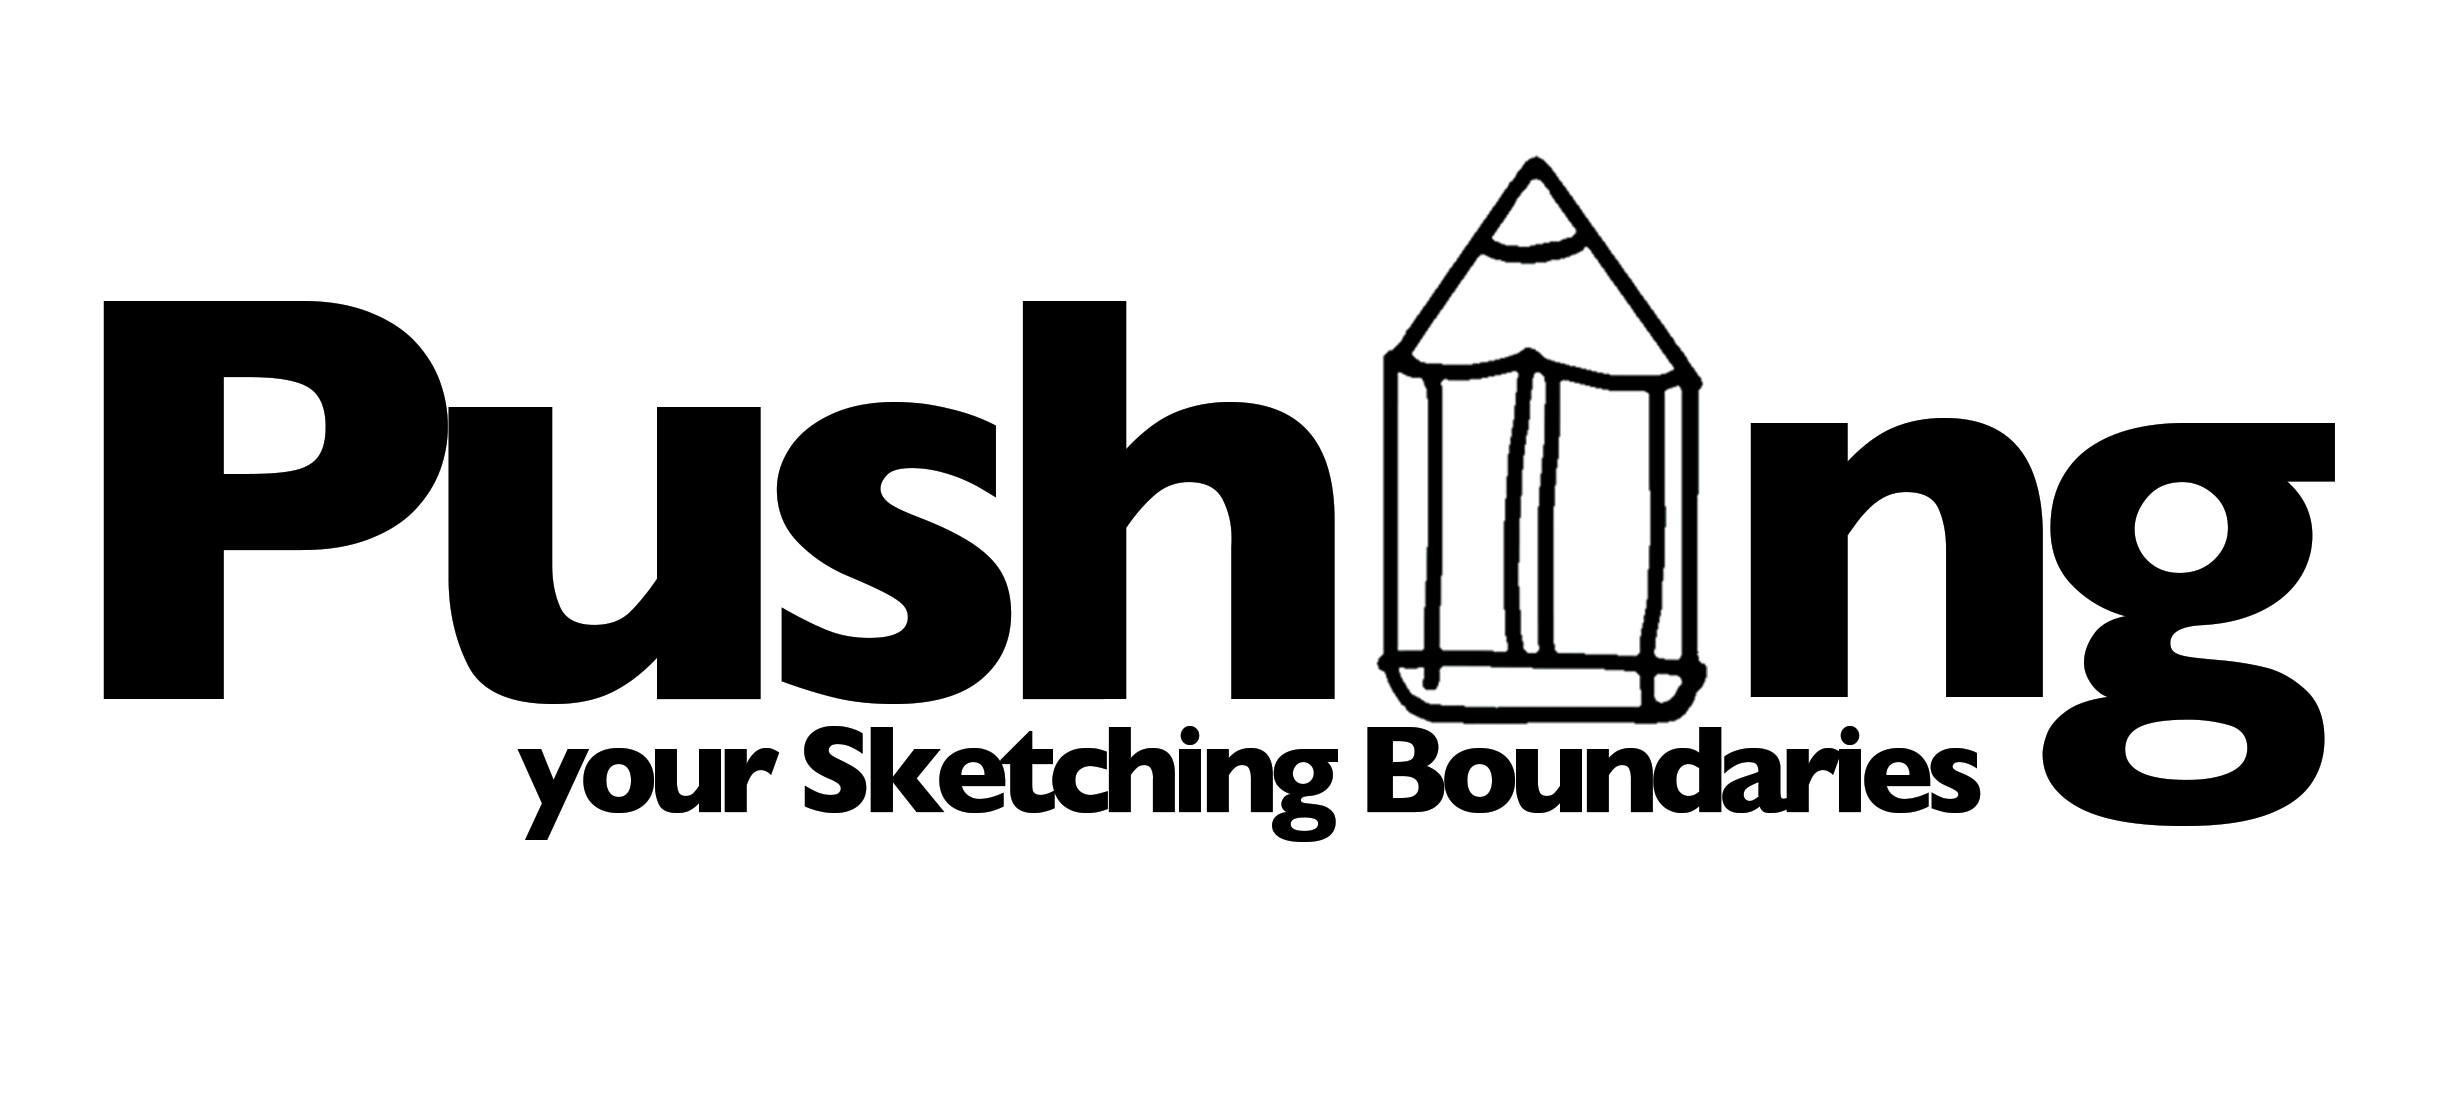 Pushing Your Sketching Boundaries